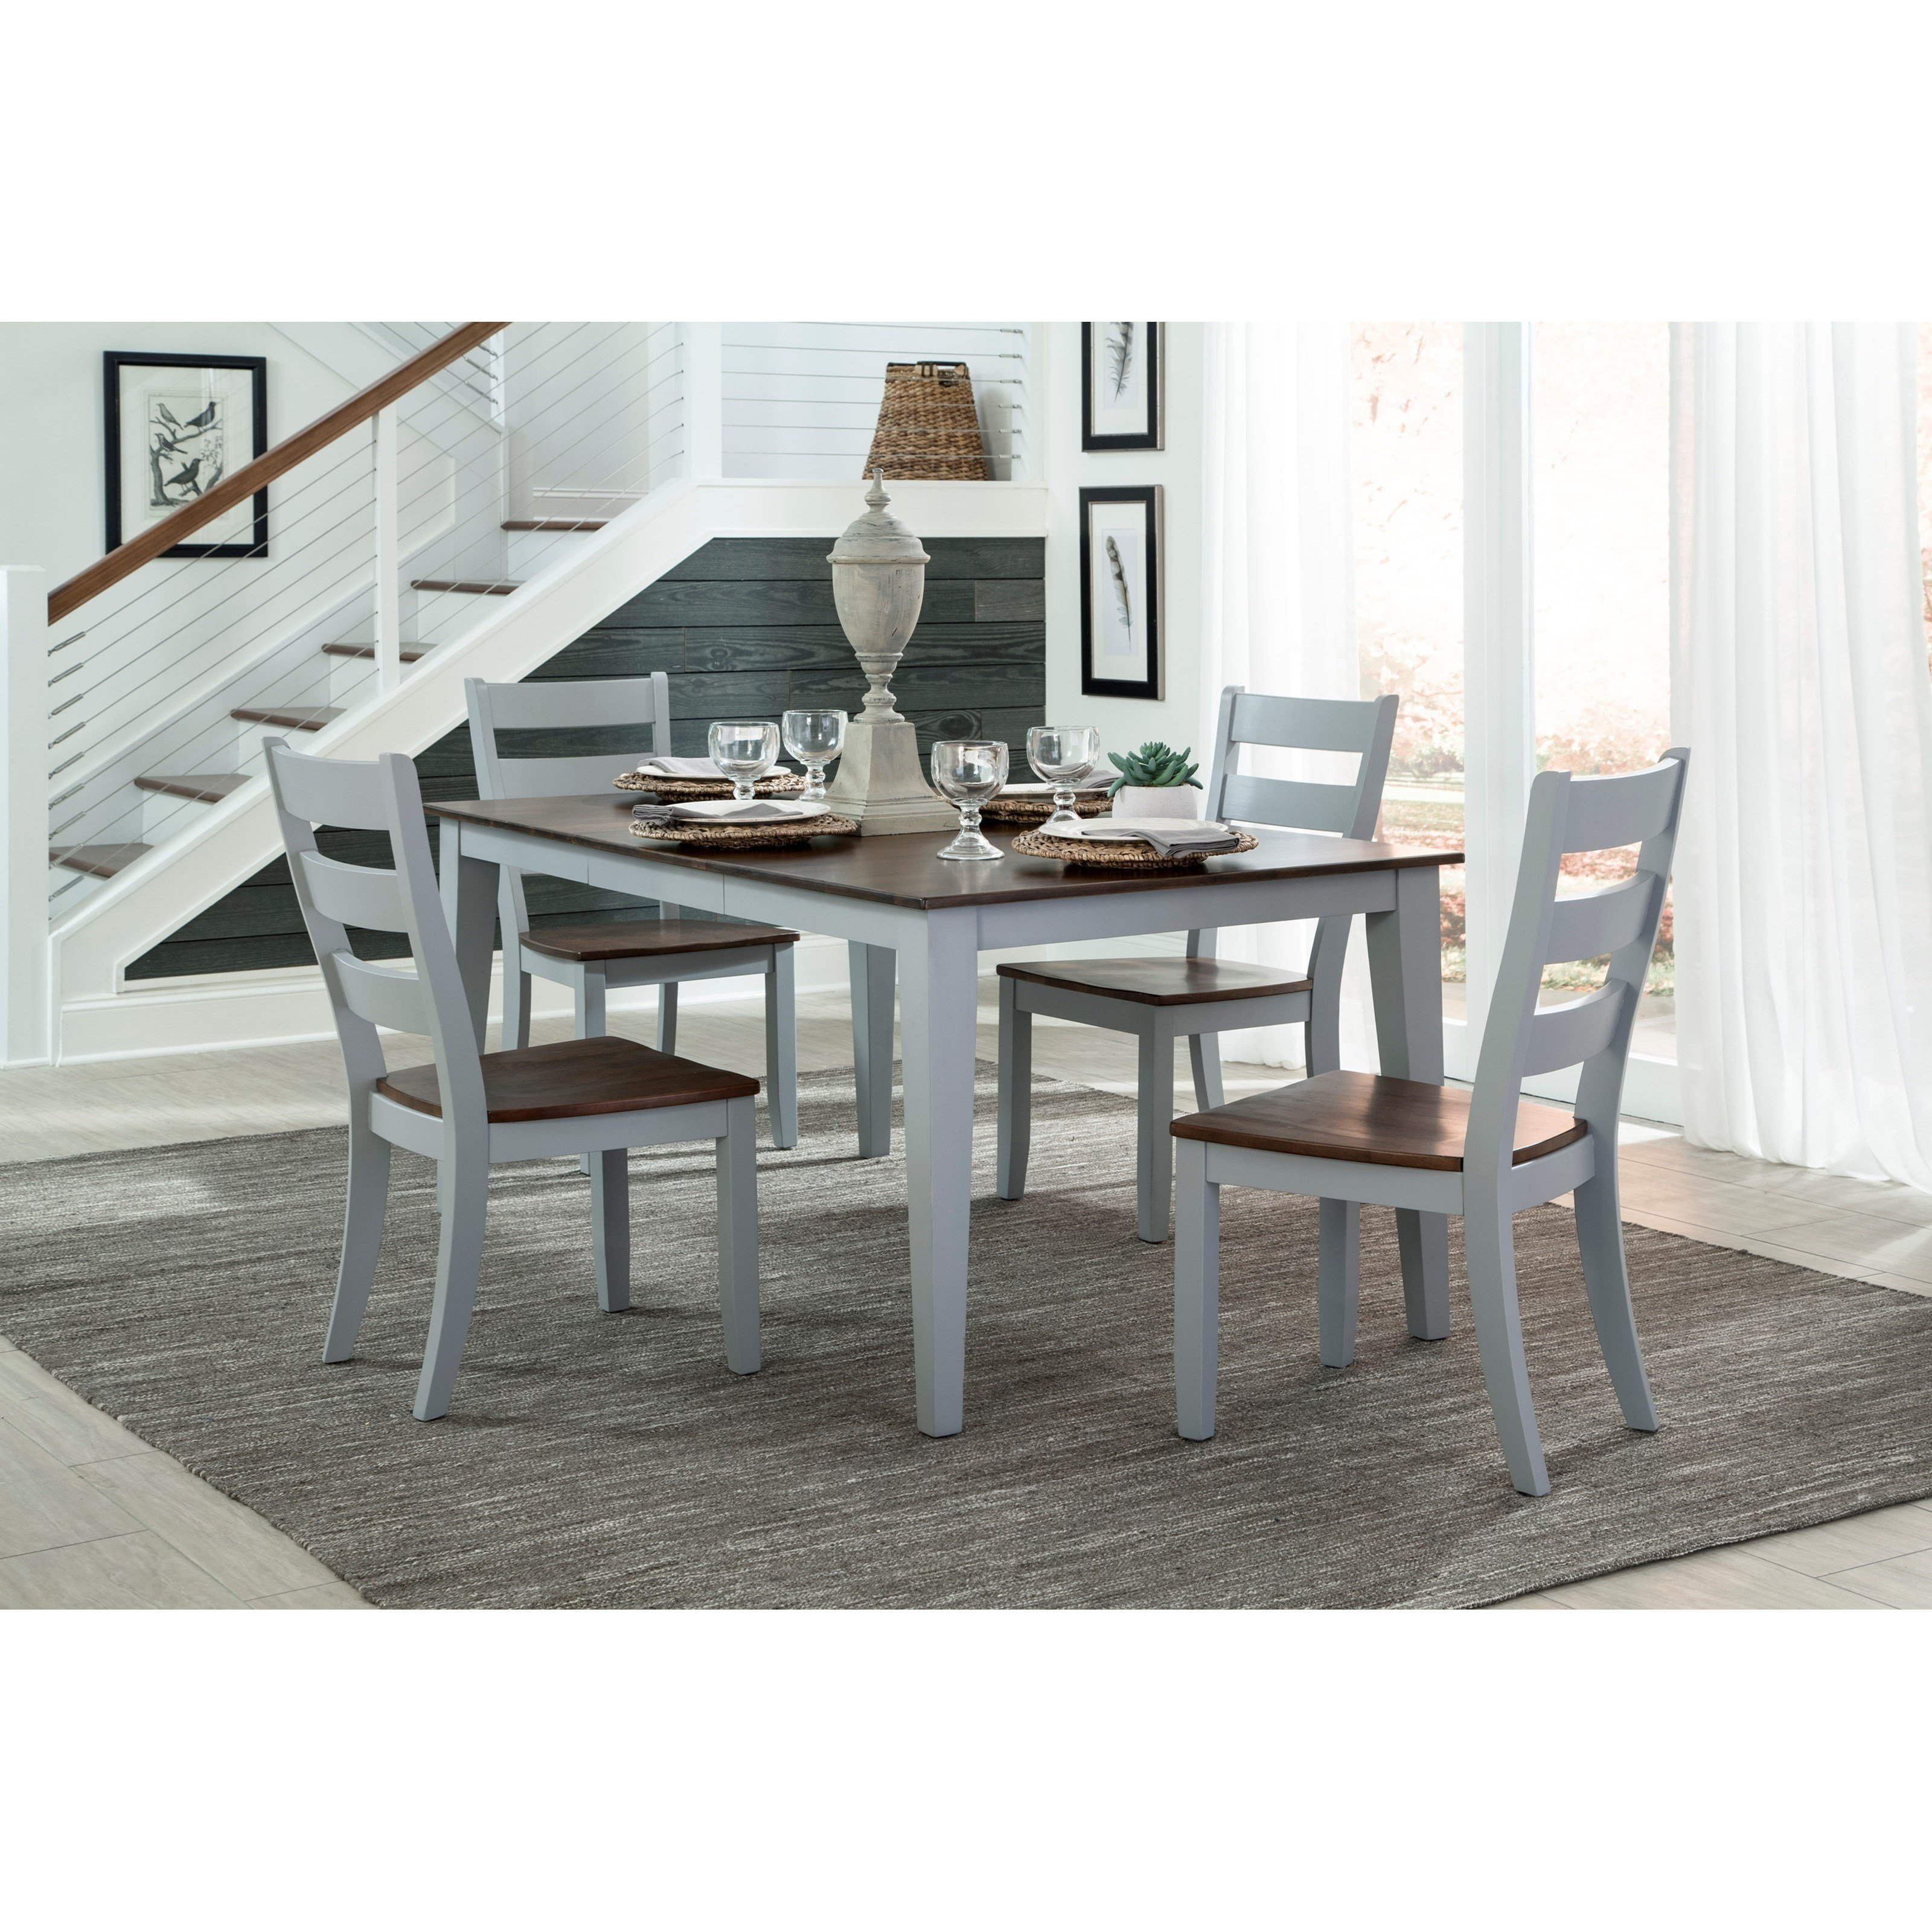 Well Known Williston Forge Brodbeck 3 Piece Occasional Coffee Table – Home In Debby Small Space 3 Piece Dining Sets (View 15 of 25)